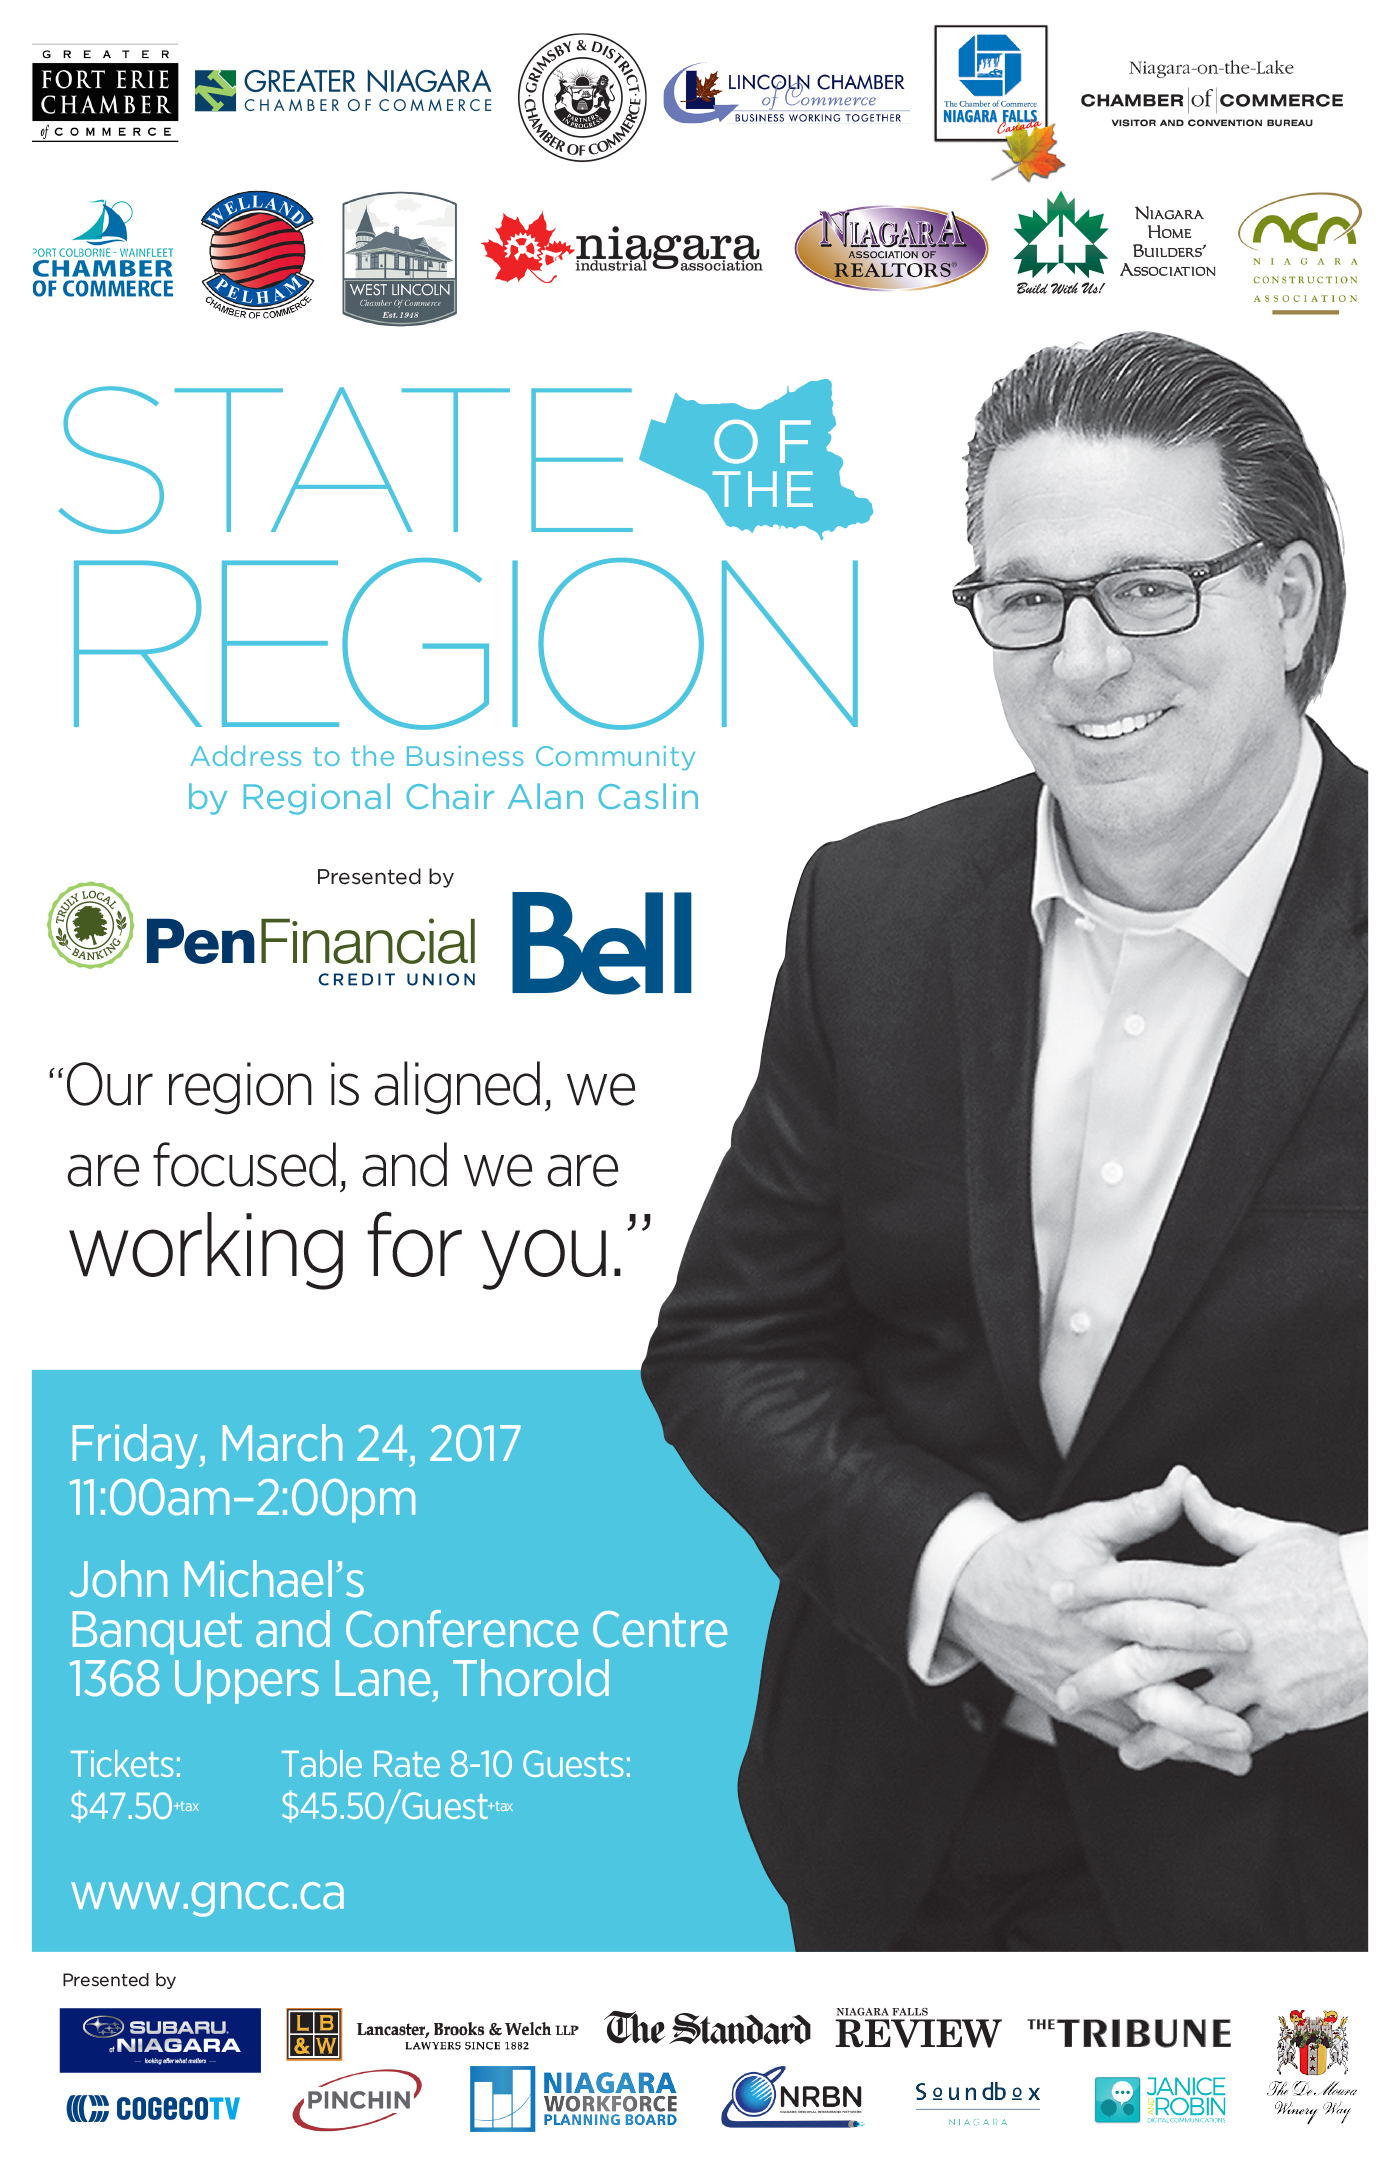 Address to the Business Community by Regional Chair Alan Caslin